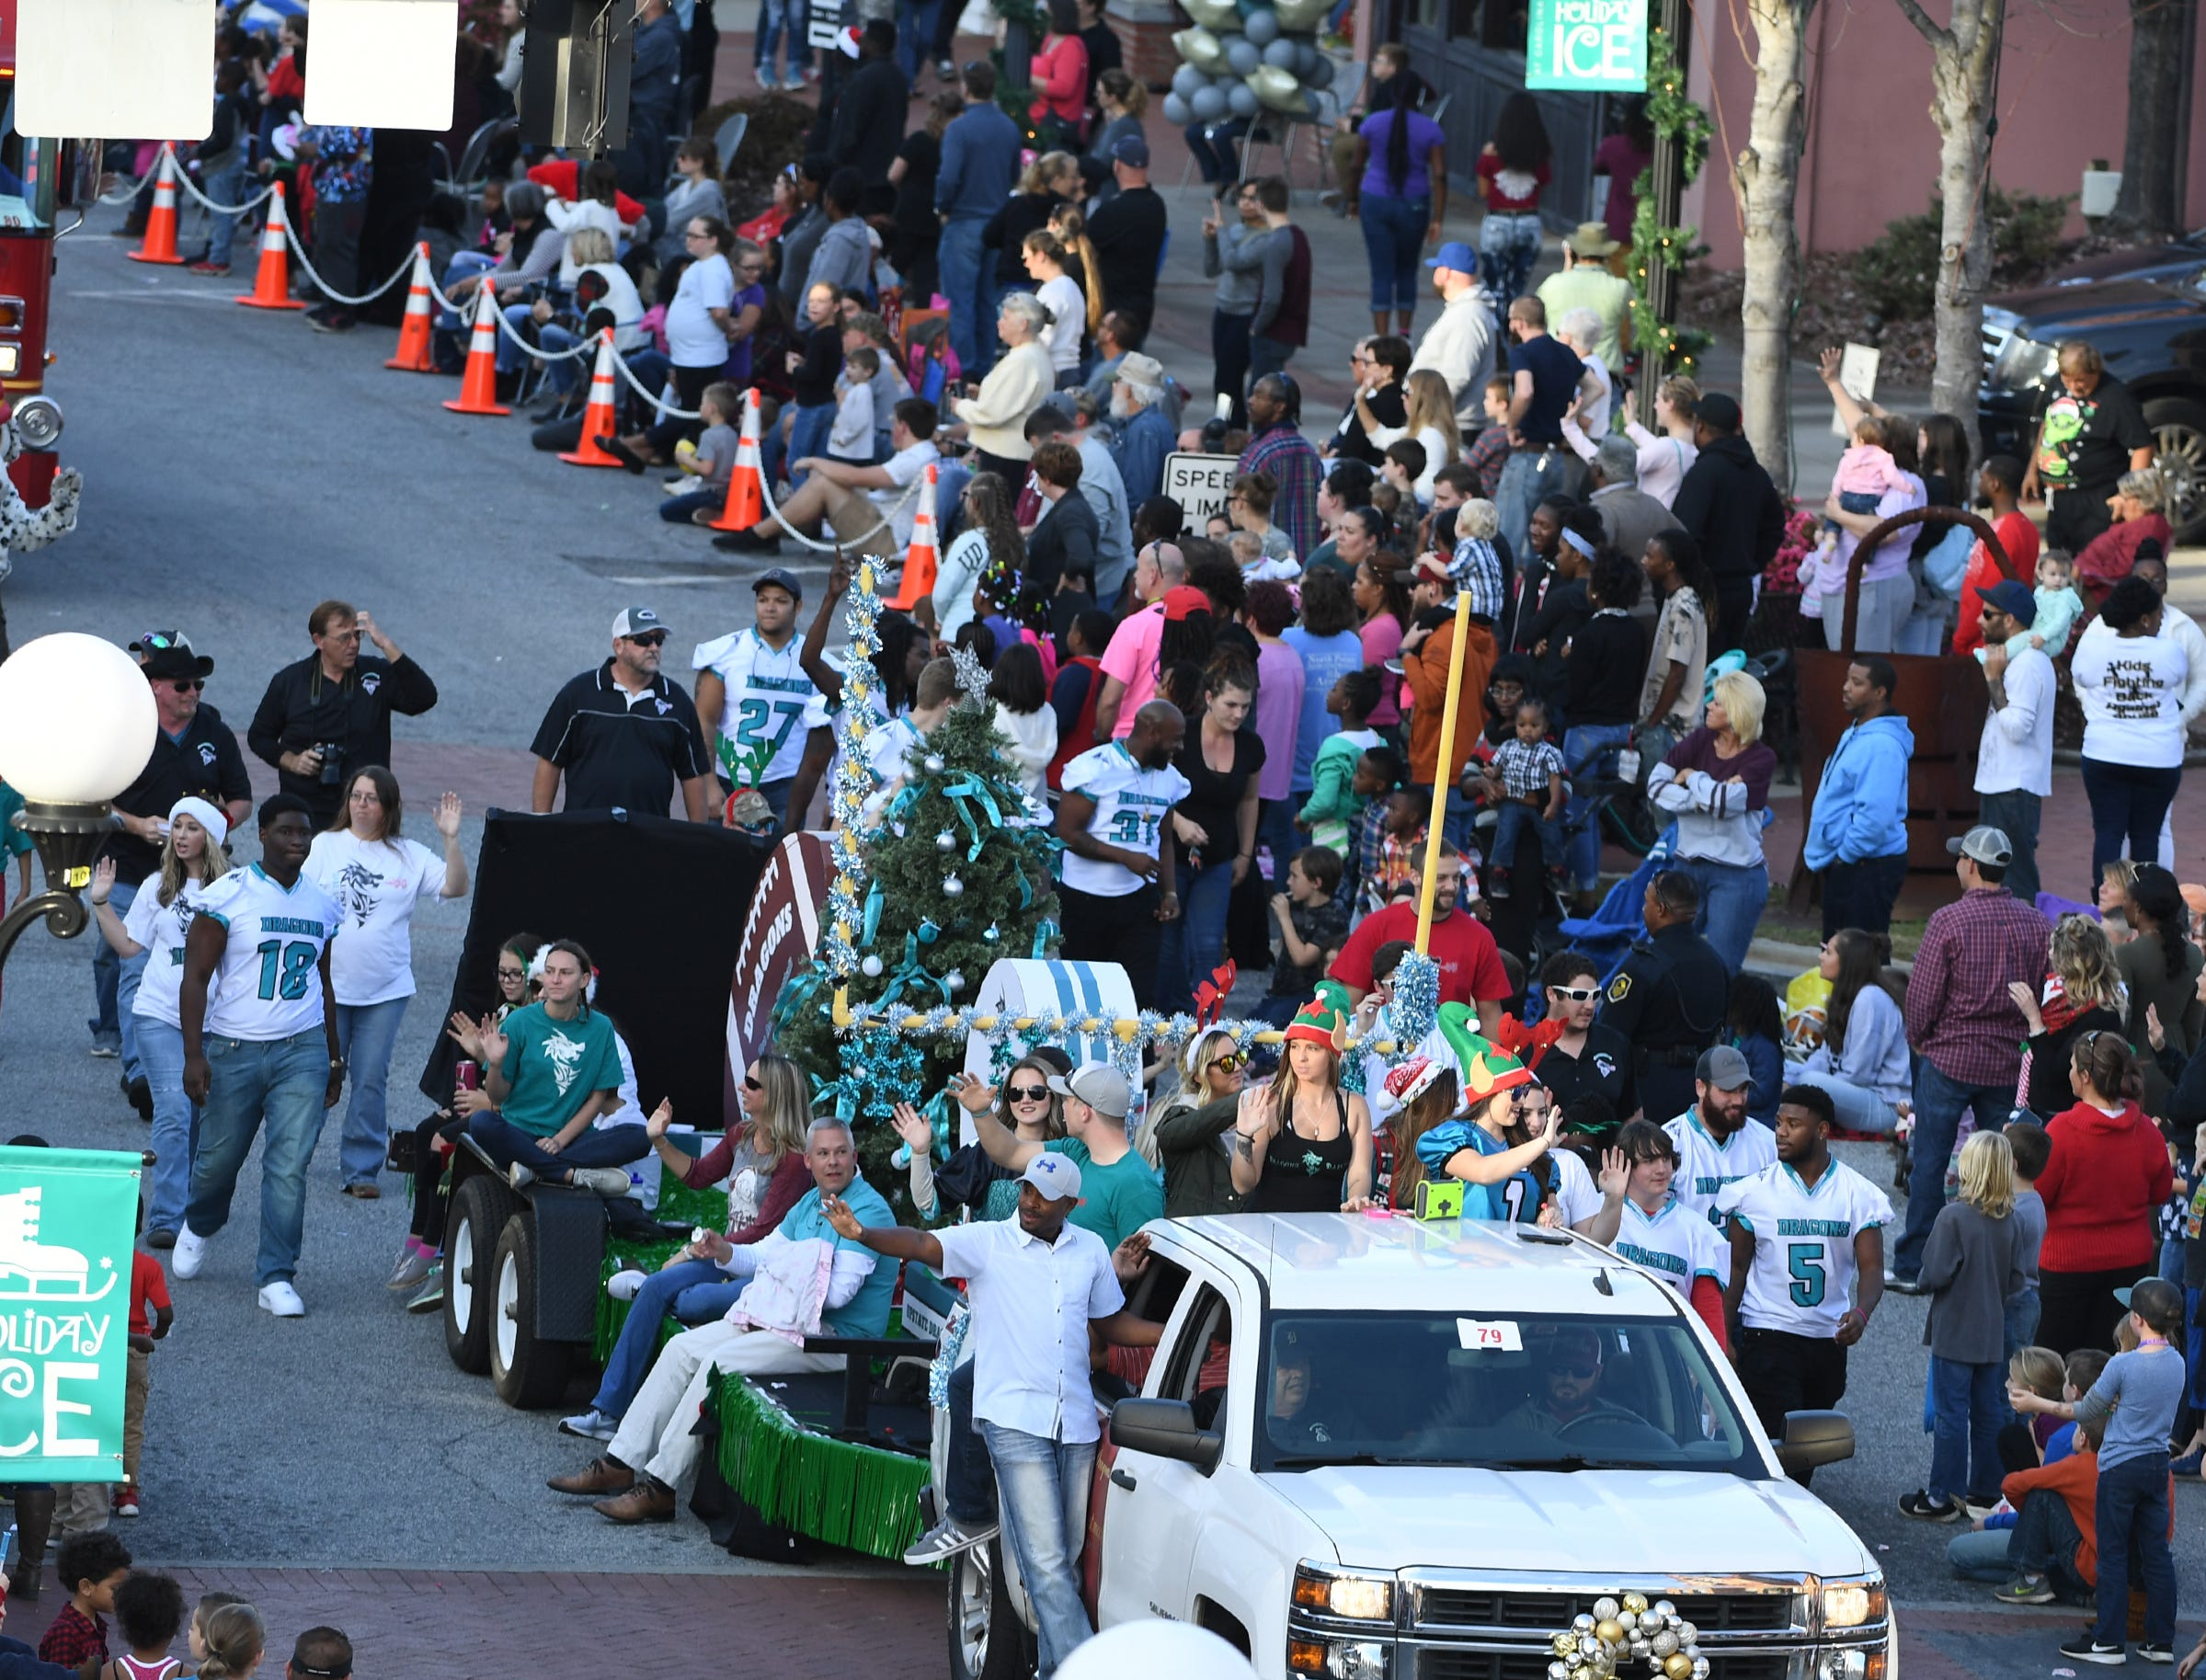 The City of Anderson Christmas Parade on Main Street in Anderson on Sunday, December 3, 2017.